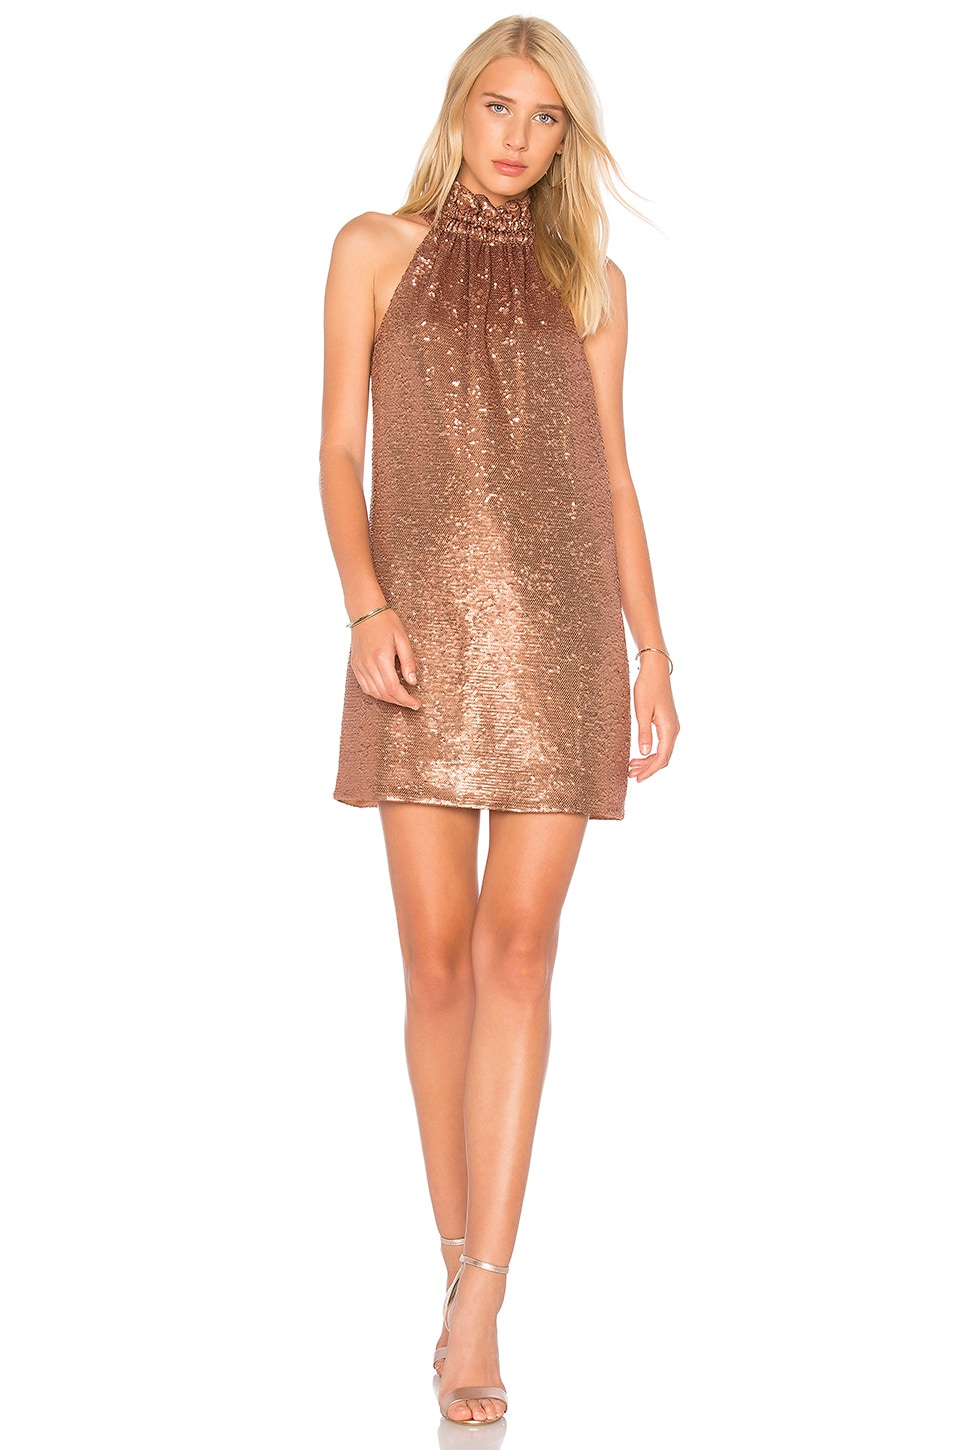 C/MEO Illuminated Mini Dress in Copper